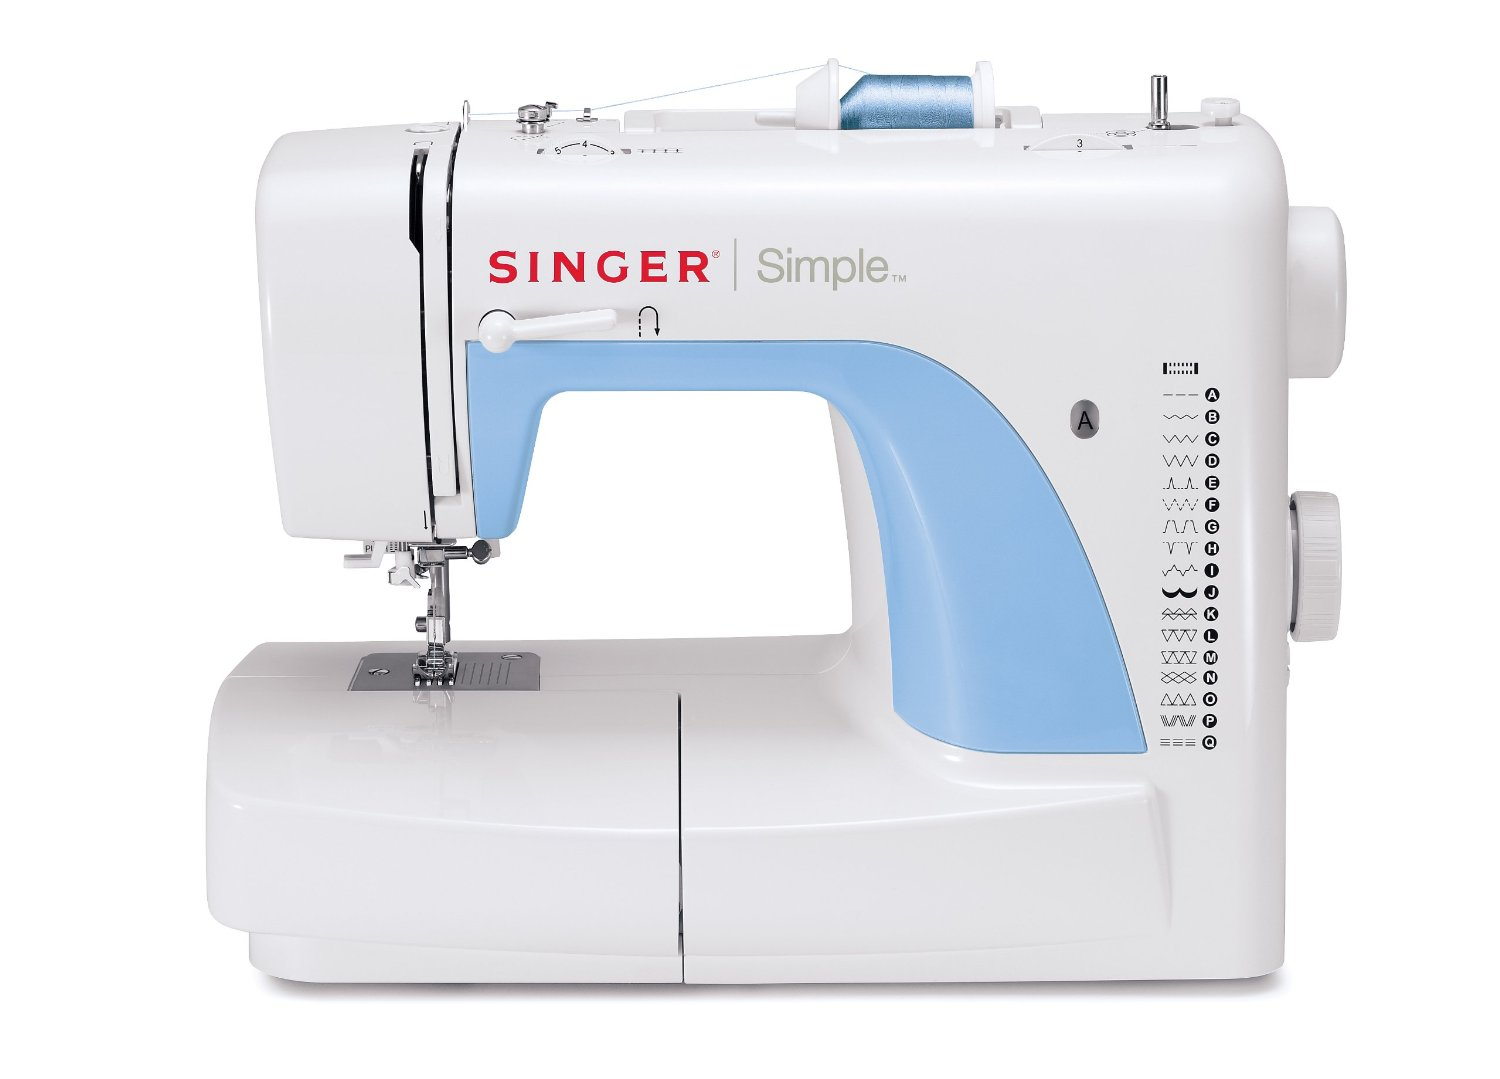 A ricambi singer simple 3116 for Ricambi singer